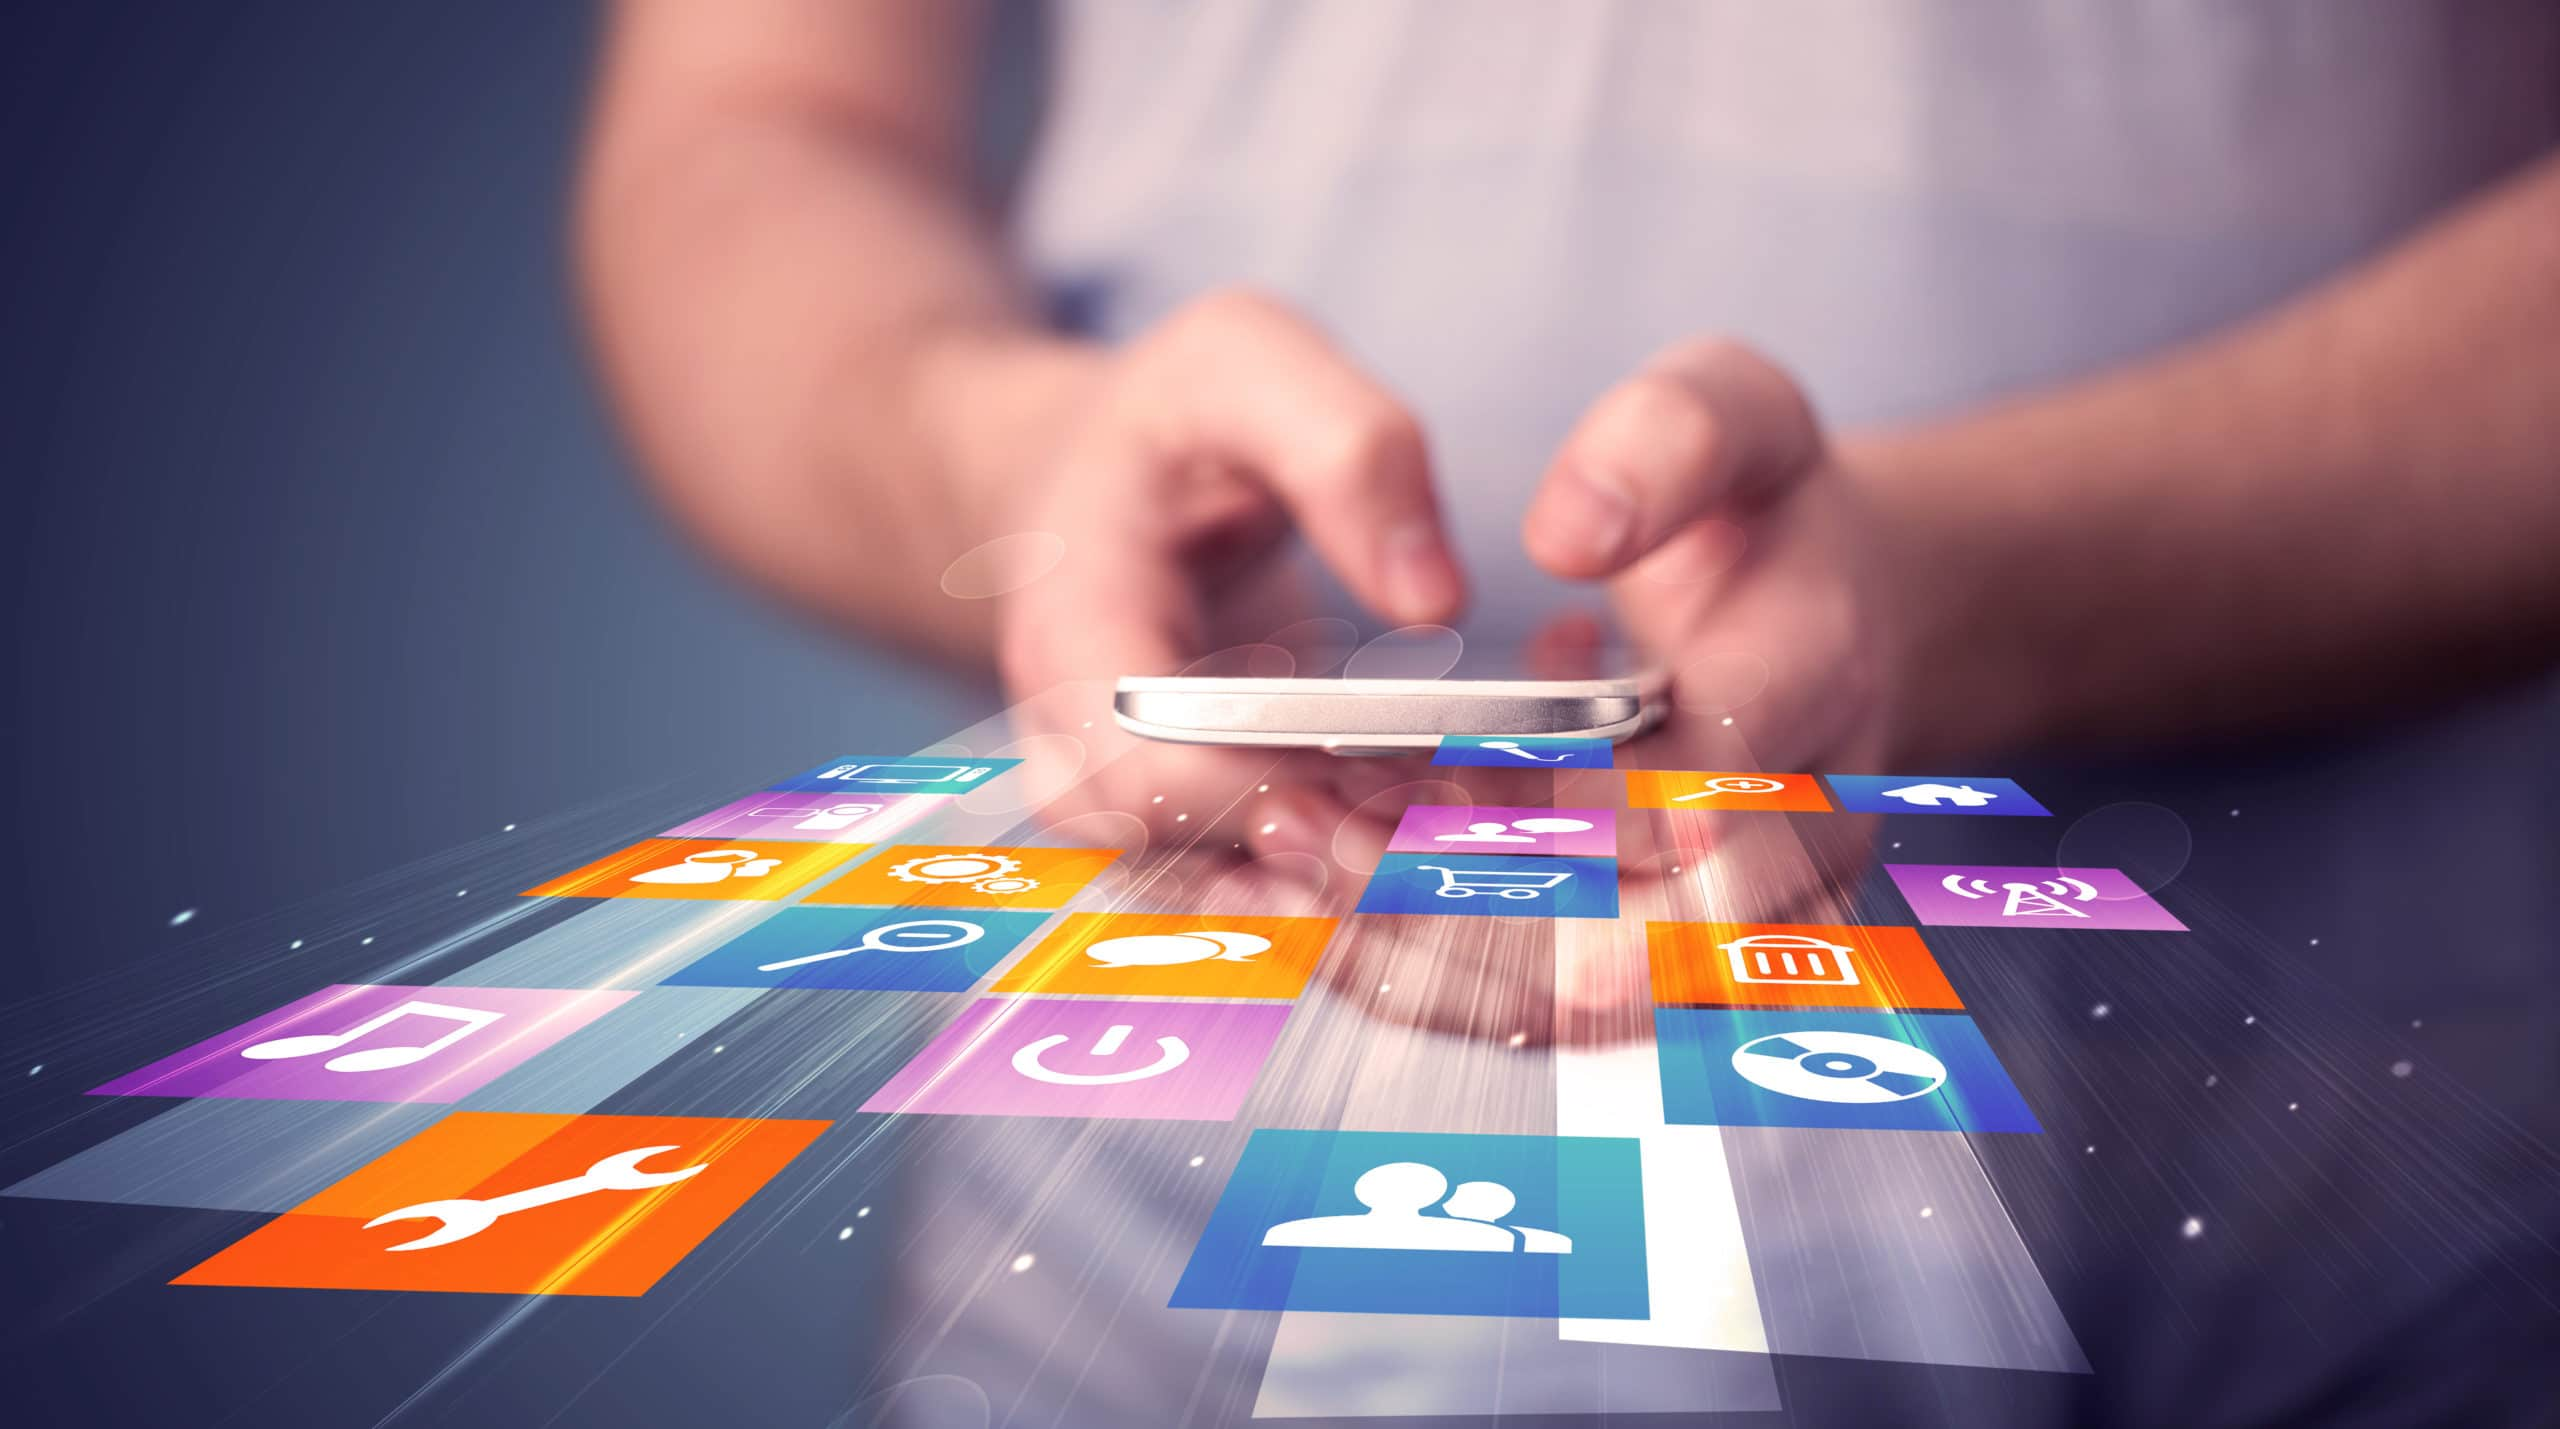 How to Code an App: An Overview of Mobile App Development | Udacity